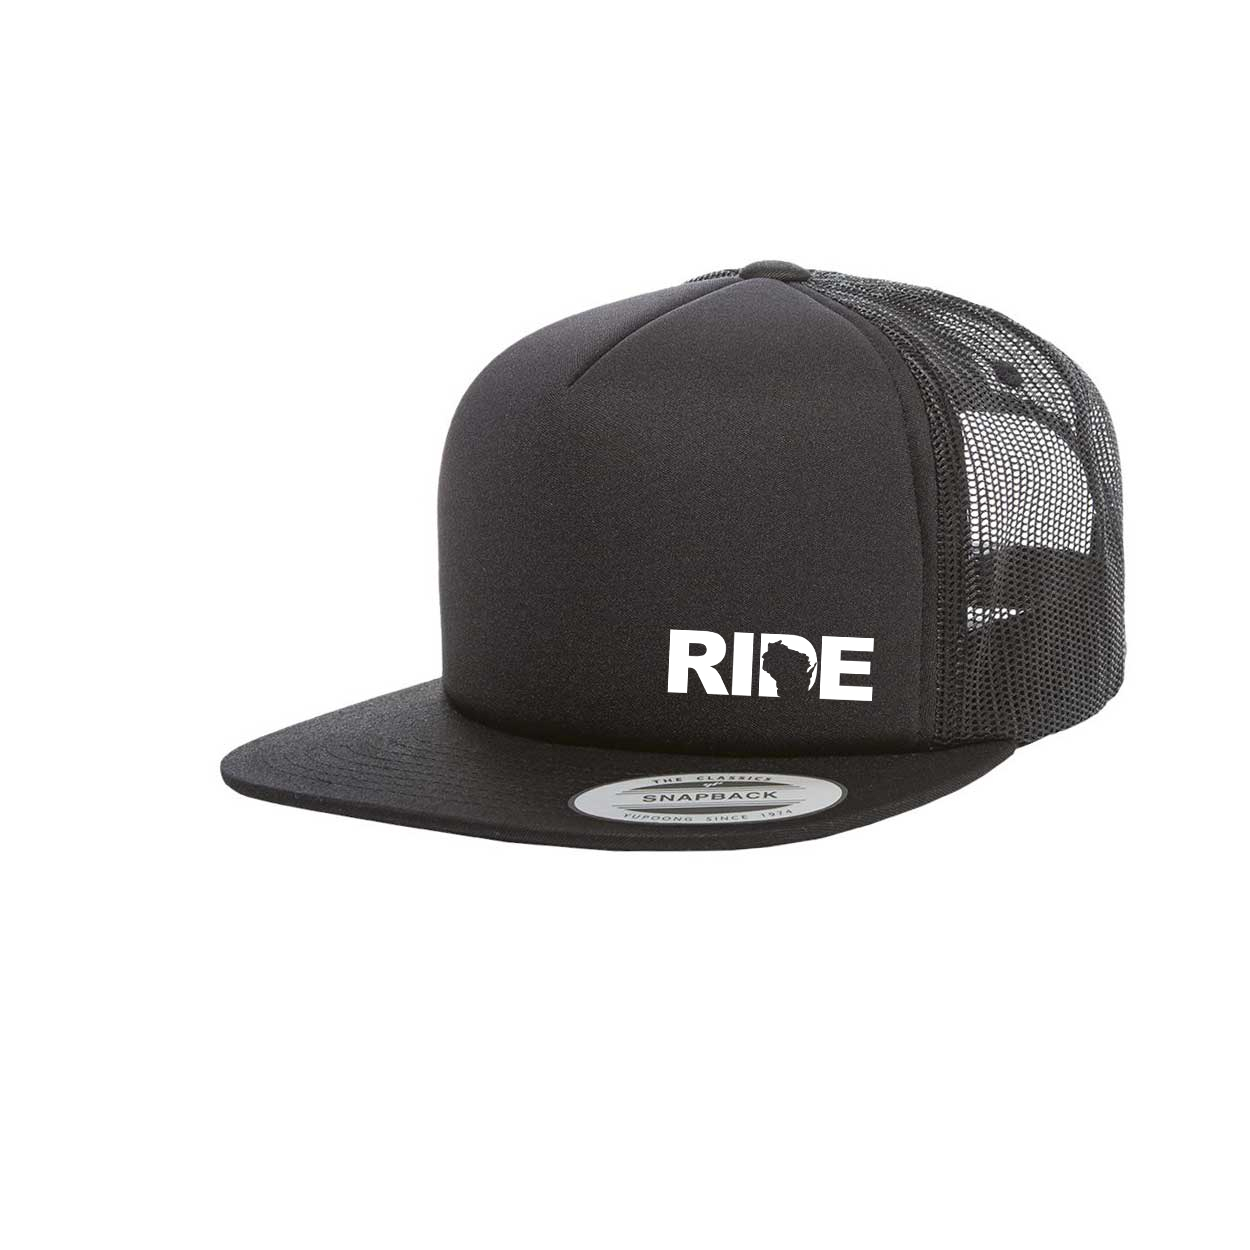 Ride Wisconsin Night Out Premium Foam Flat Brim Snapback Hat Black (White Logo)